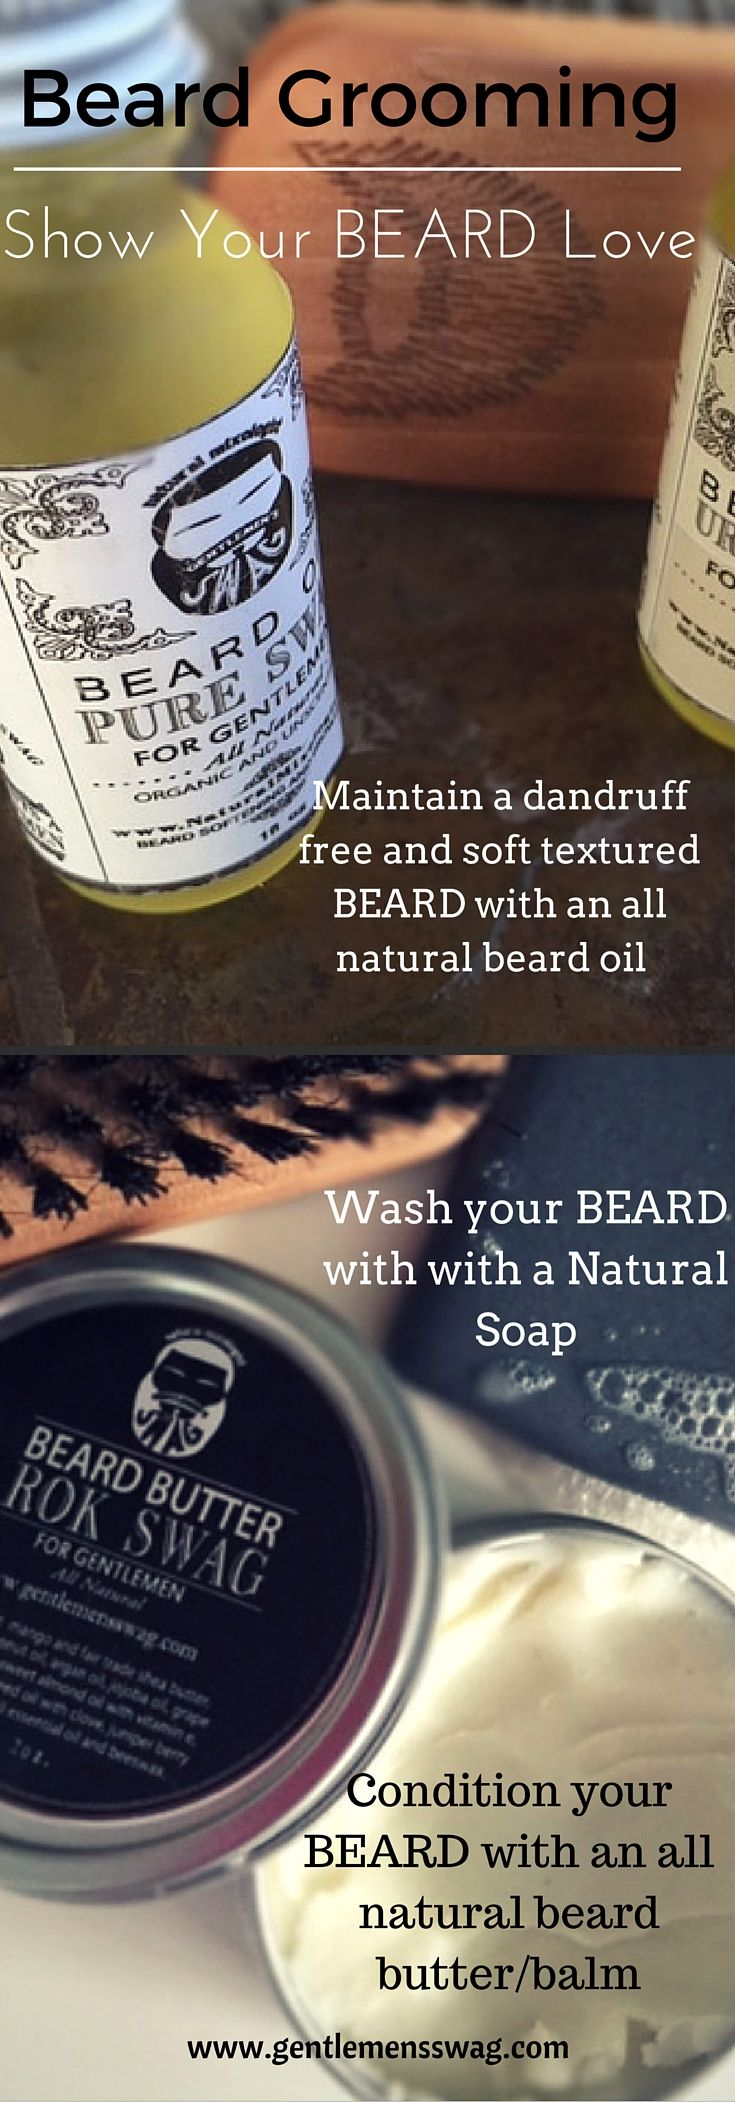 Grooming your Manly Beard with all natural beard oil and beard butter/balm will lead to a healthy and well maintained beard.